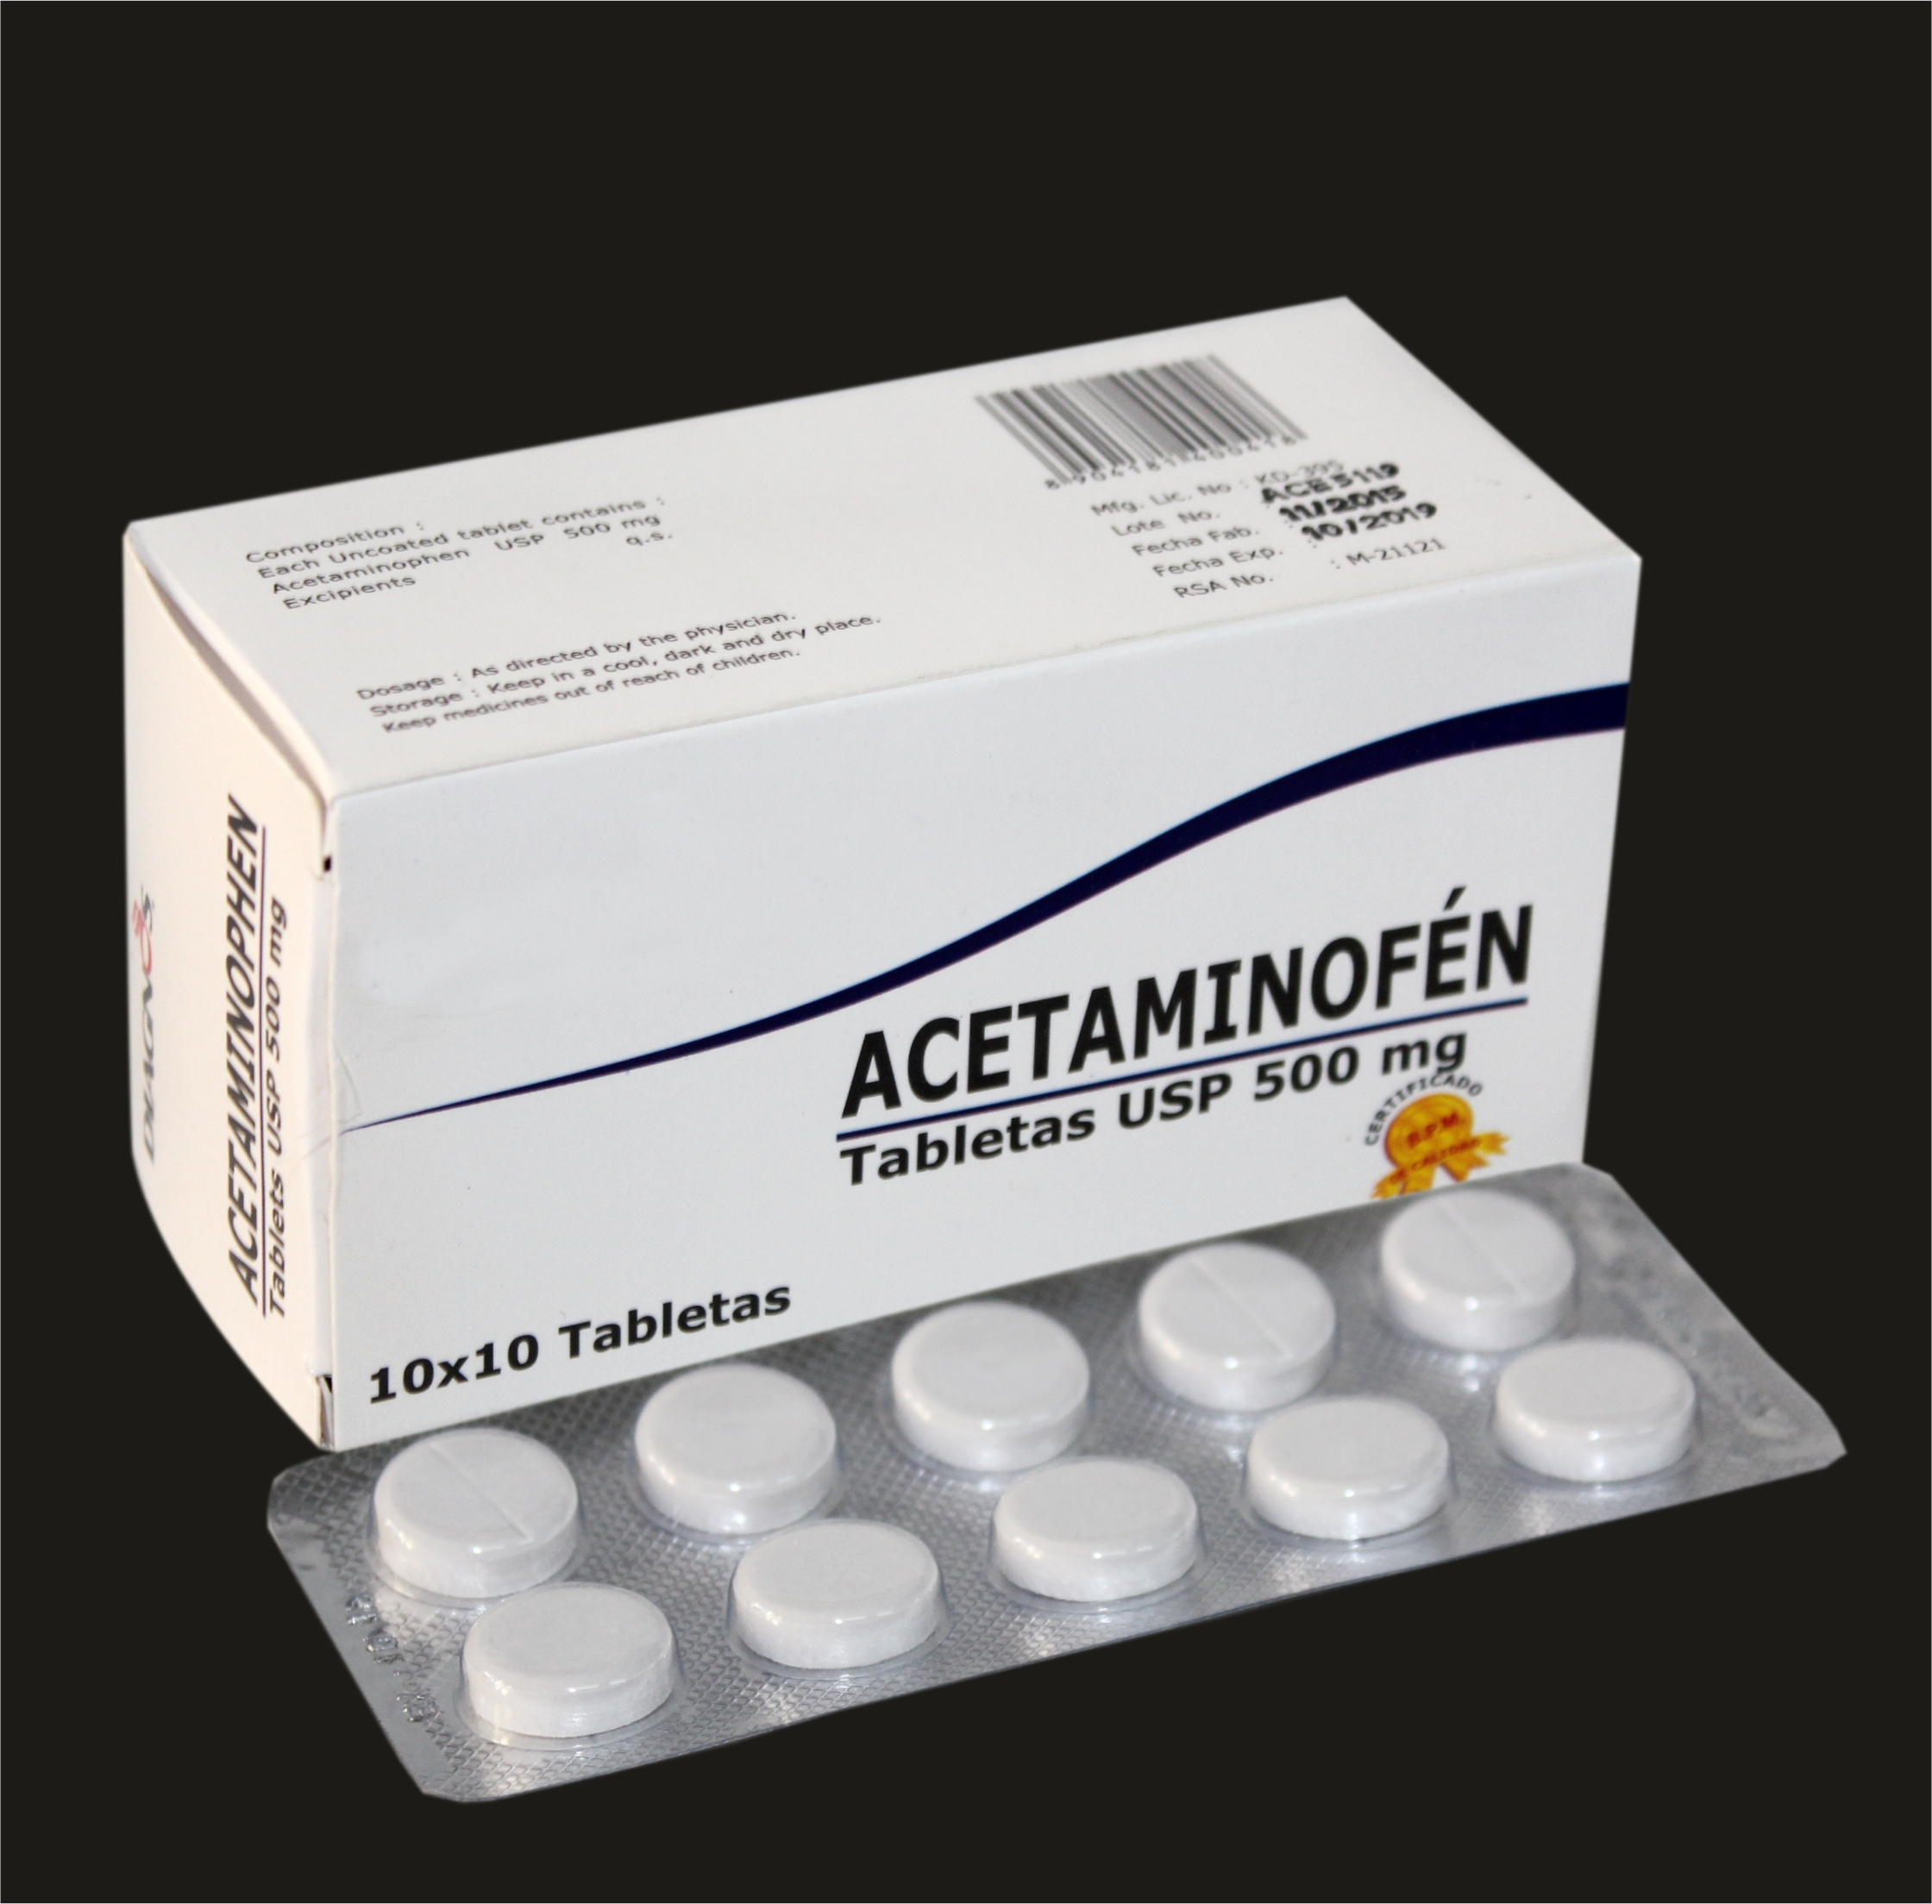 Acetaminophen Tablets